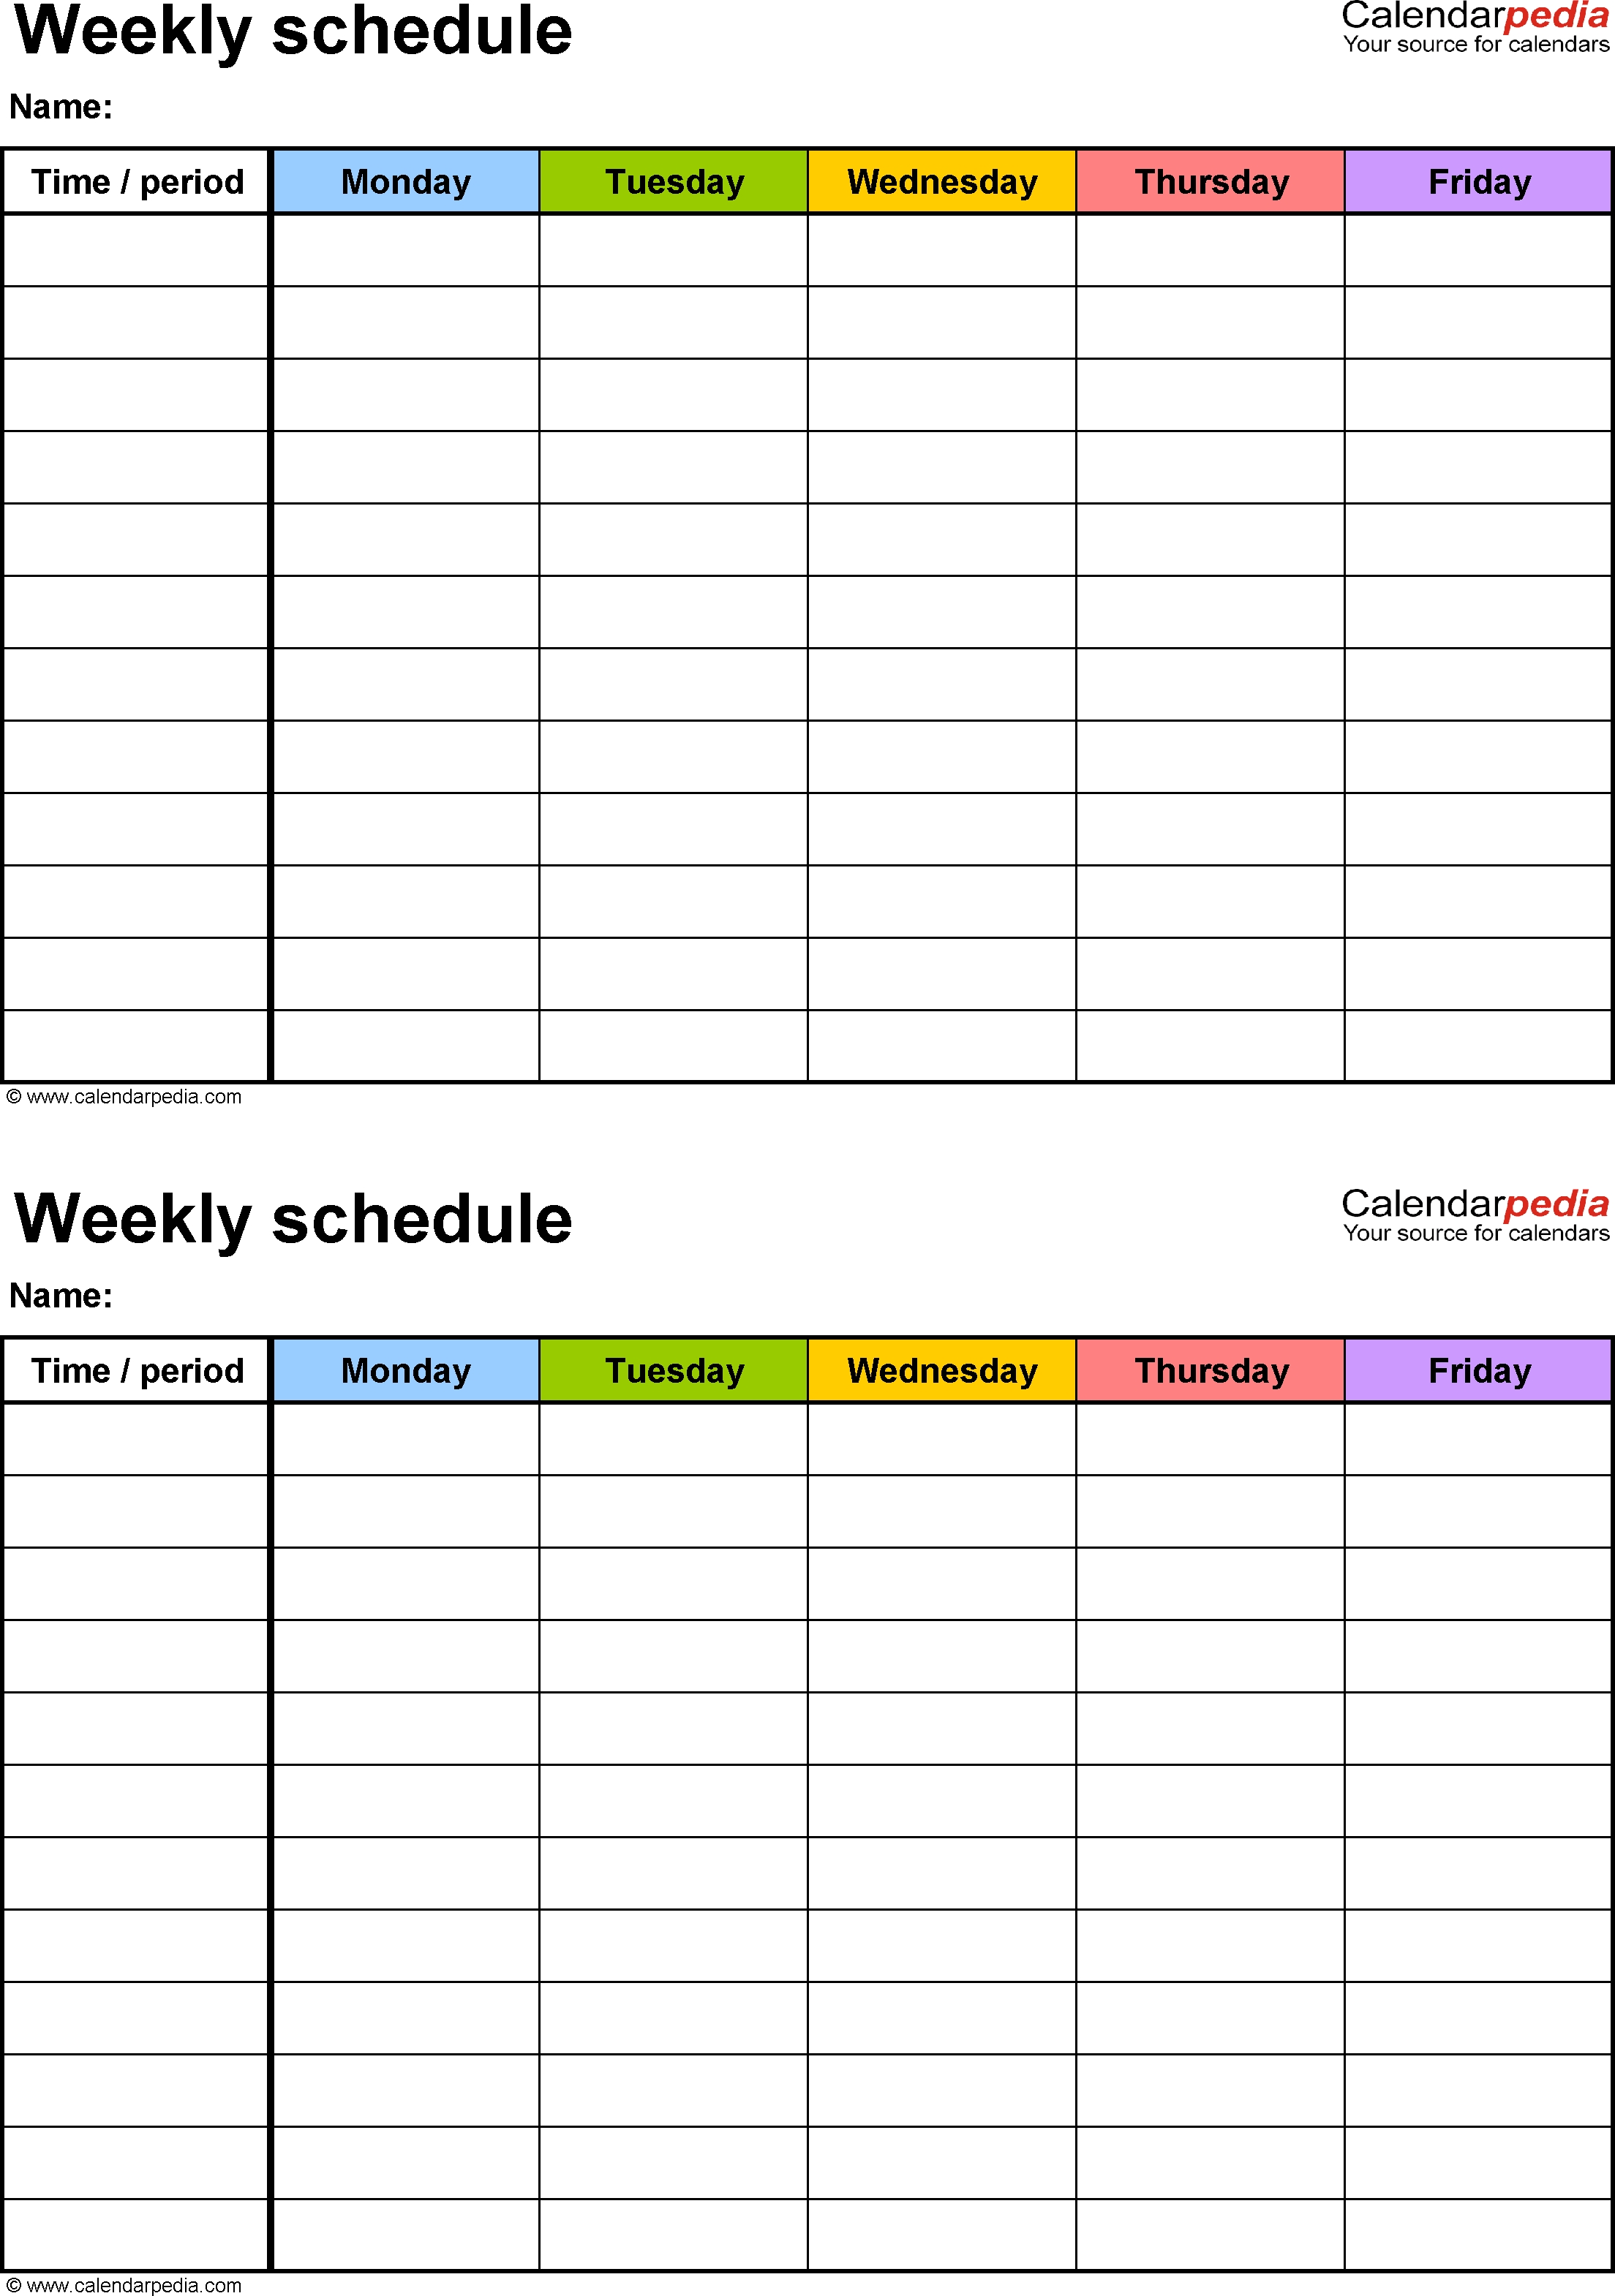 Weekly Schedule Template For Excel Version 3: 2 Schedules On One intended for Monday To Friday Timetable Template